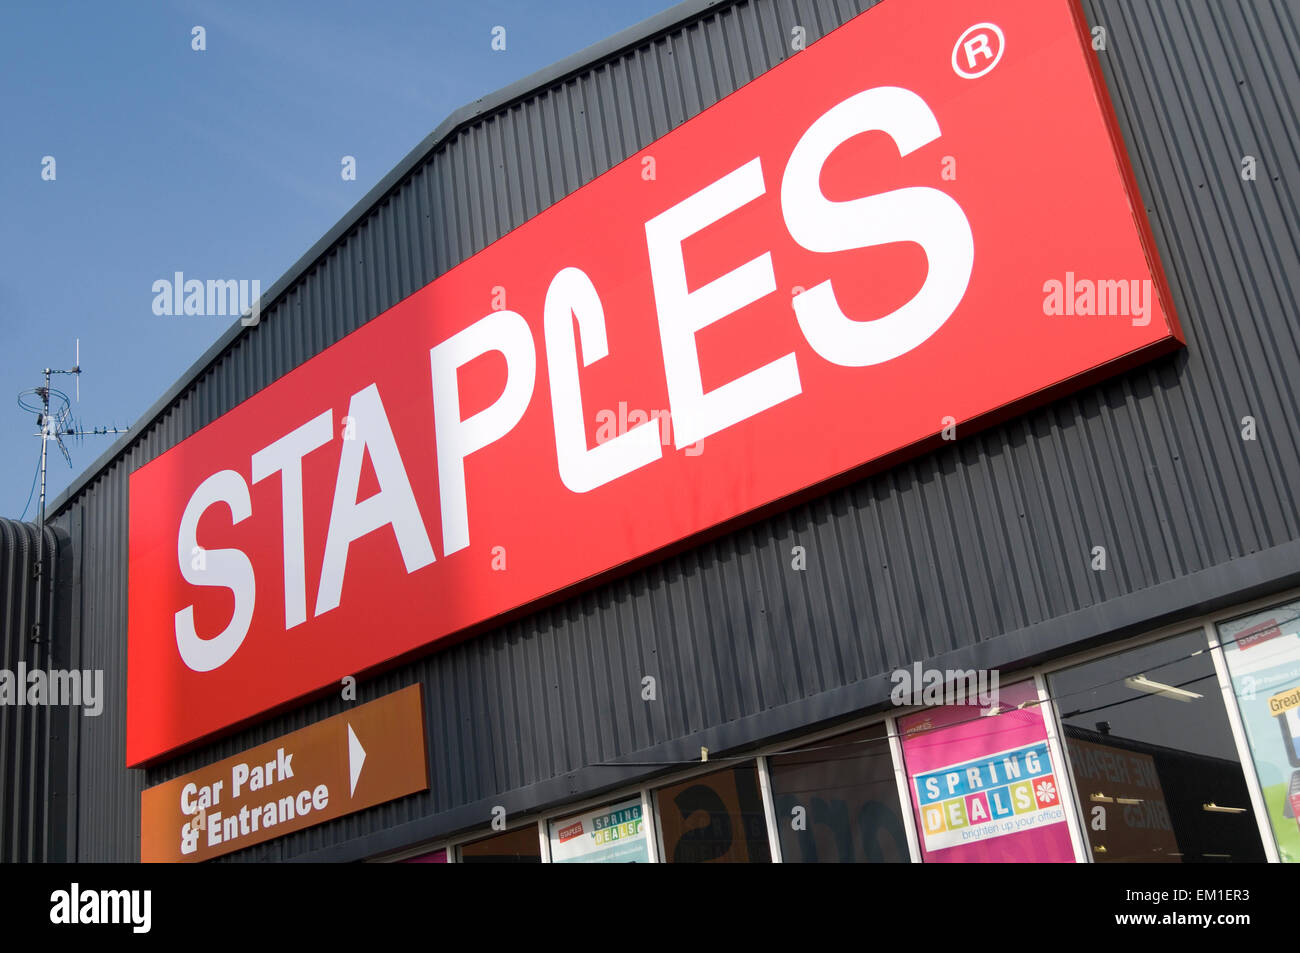 staples stationary superstore shop stationers stationery shops chain brand logo sign - Stock Image